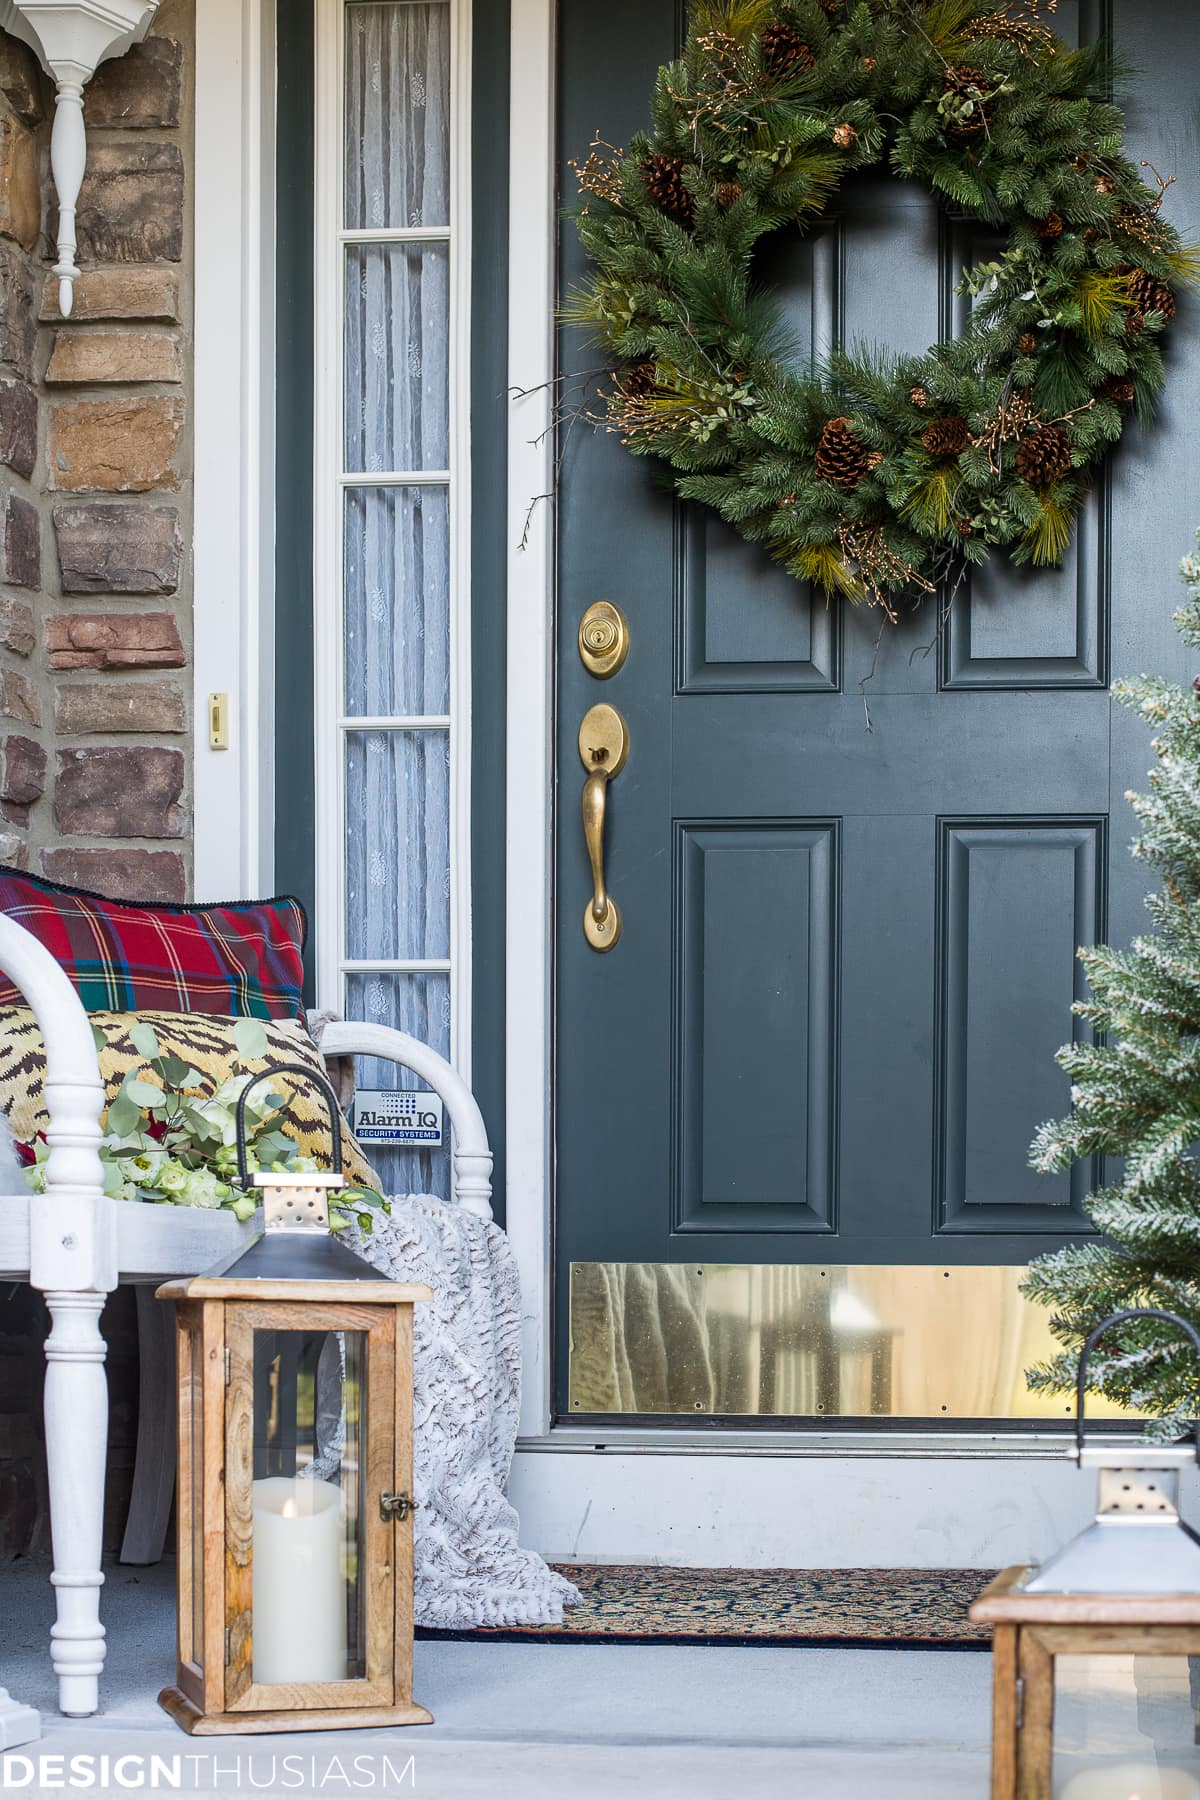 Easy Outdoor Christmas Decorating Ideas for a Tiny Front Porch - designthusiasm.com